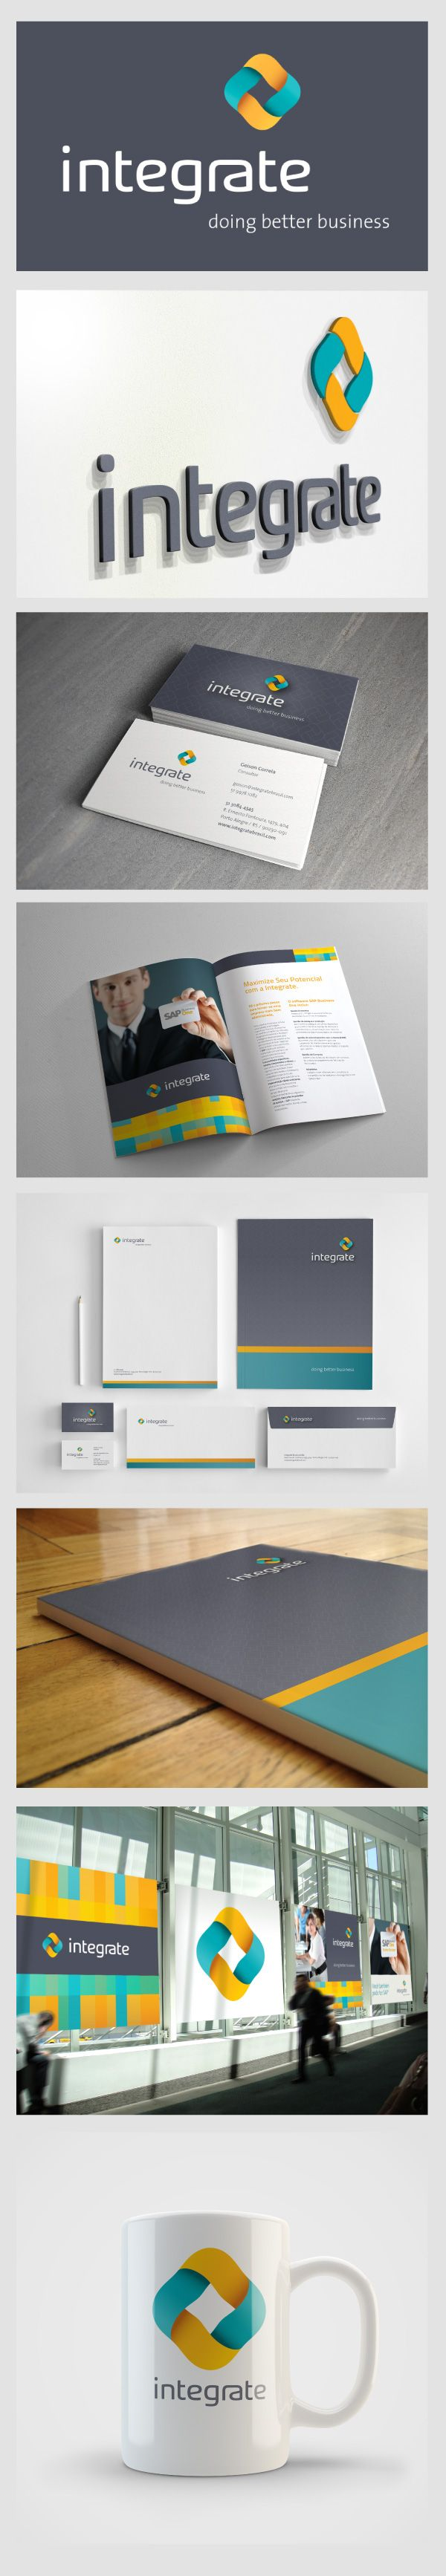 integrate branding # booklet design | #stationary #corporate #design #corporatedesign #identity #branding #marketing < repinned by www.BlickeDeeler.de | Take a look at www.LogoGestaltung-Hamburg.de